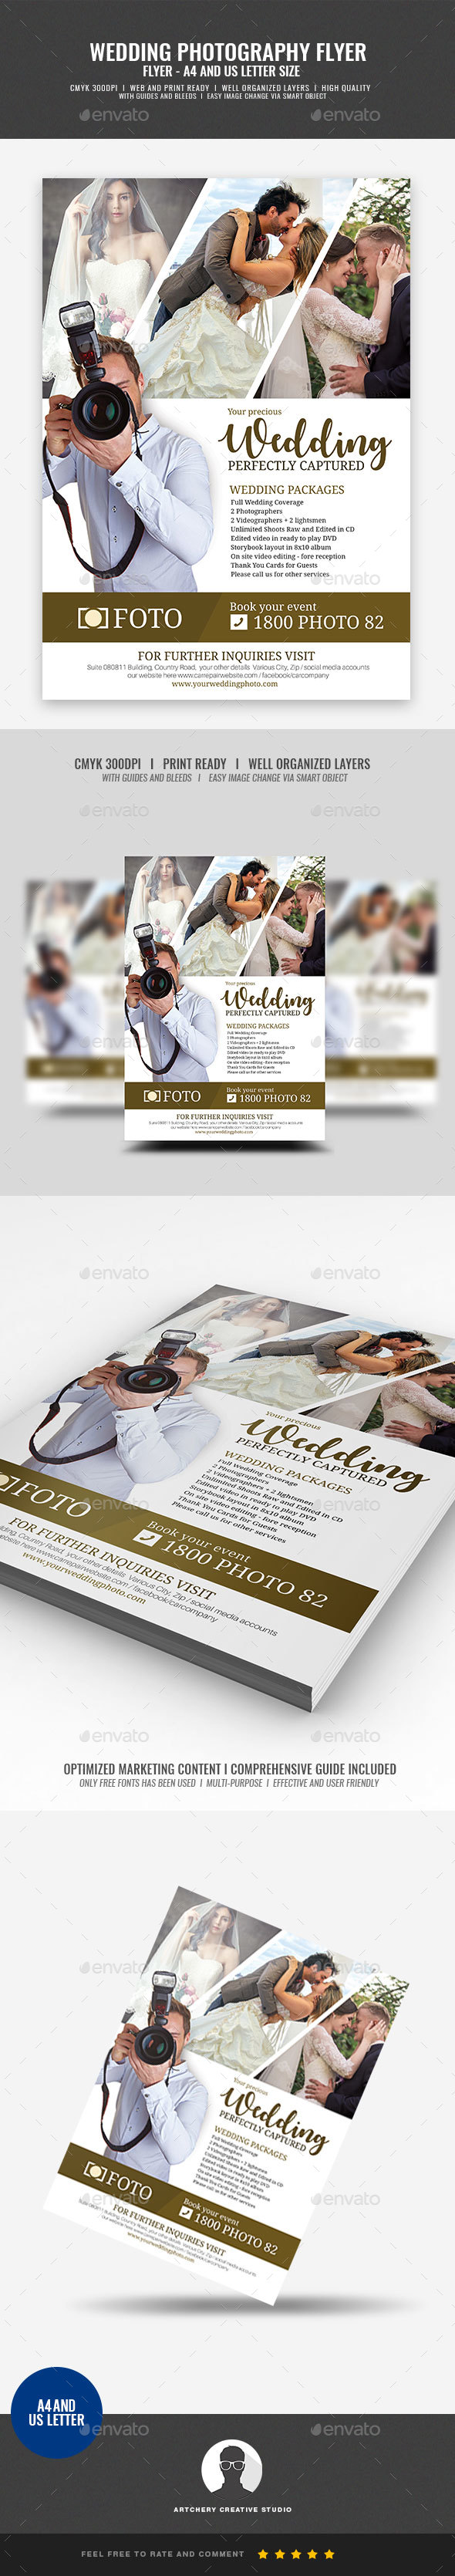 Wedding Photography Services Flyer - Corporate Flyers